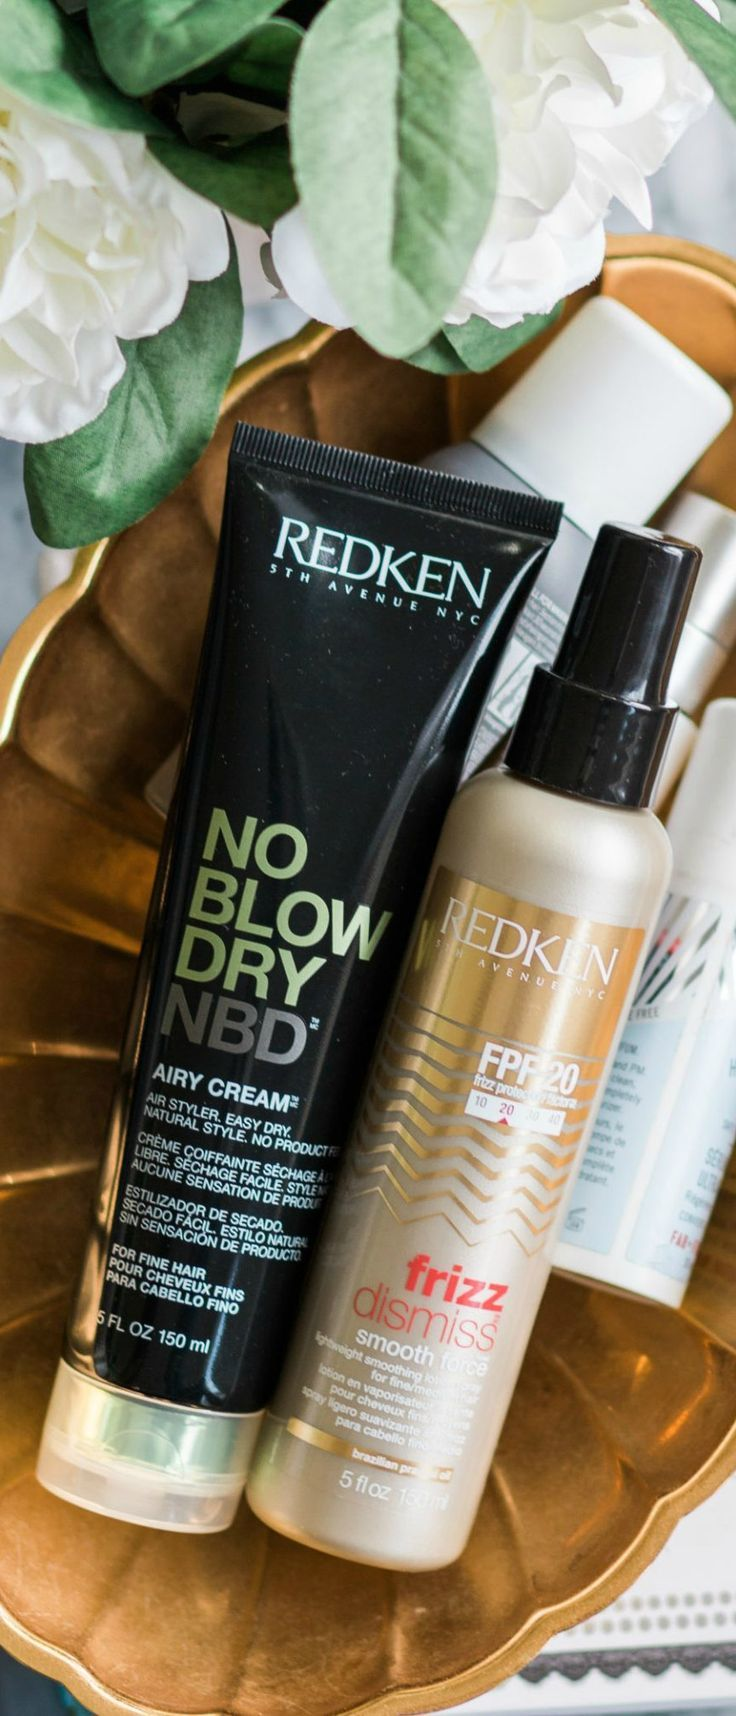 The best anti-frizz hair products for fine hair + Redken NBD No Blow Dry Airy Cream and Frizz Defense Smooth Force spray review #MyHCLook sponsored by @haircuttery   | Best hair products, luxury hair care, Redken anti-frizz heat protectant for fine hair, no-heat hairstyle, fight frizz, beauty review, hair product review, hair product favorites, beauty blogger Ashley Brooke Nicholas